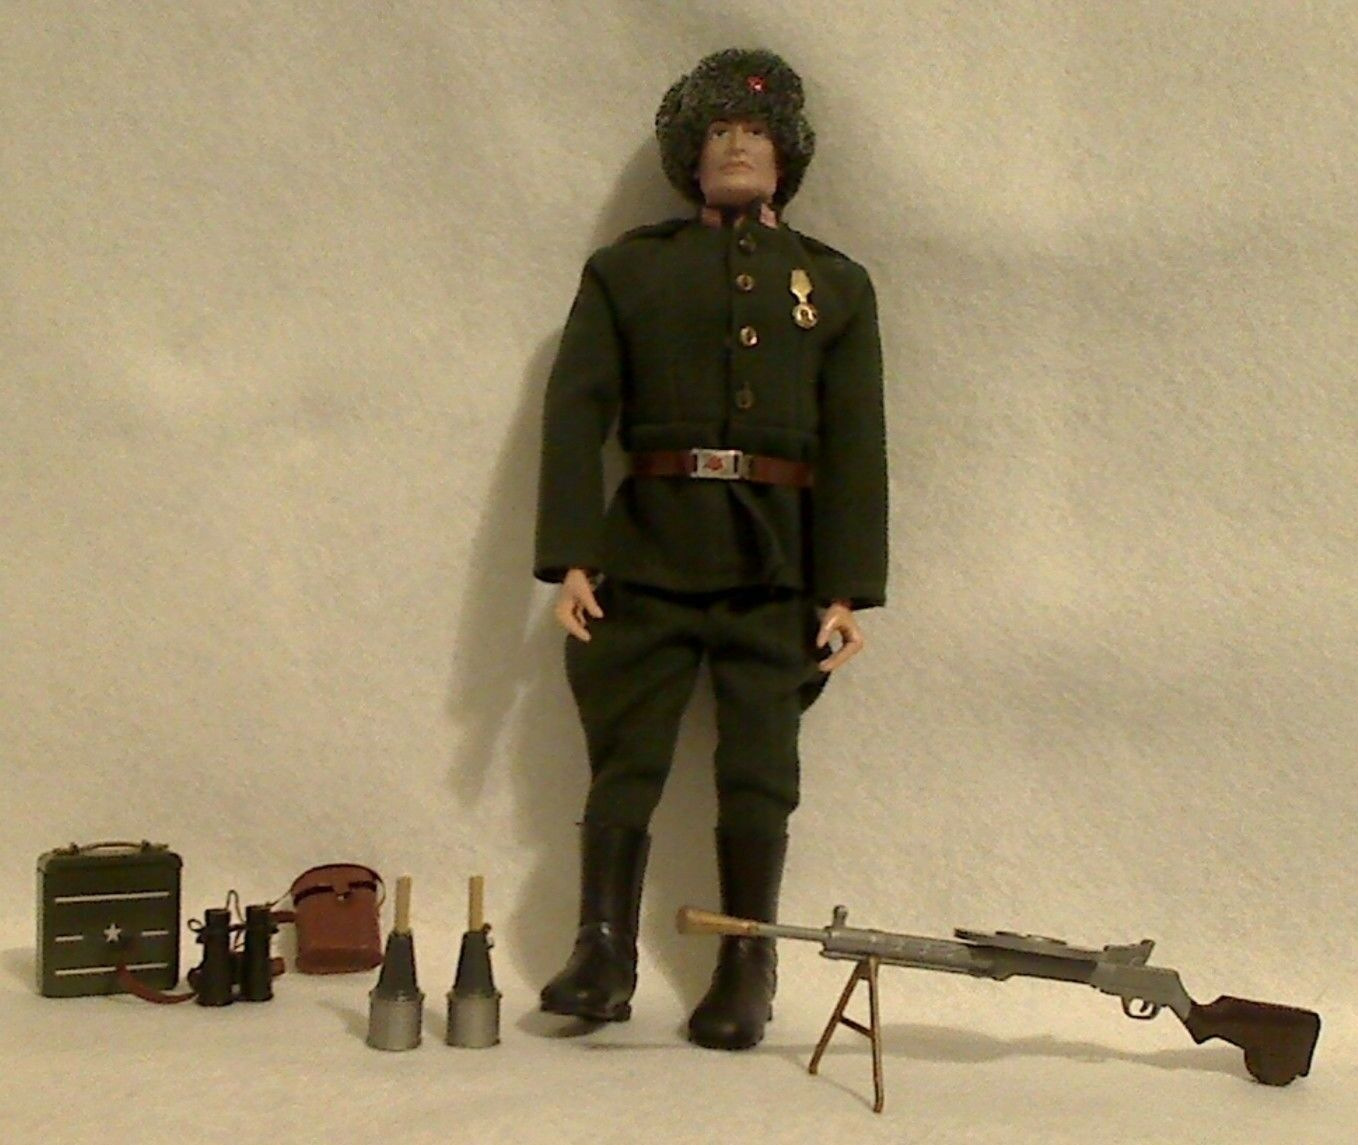 GI JOE Vintage Russian Infantry Soldier with all accessories